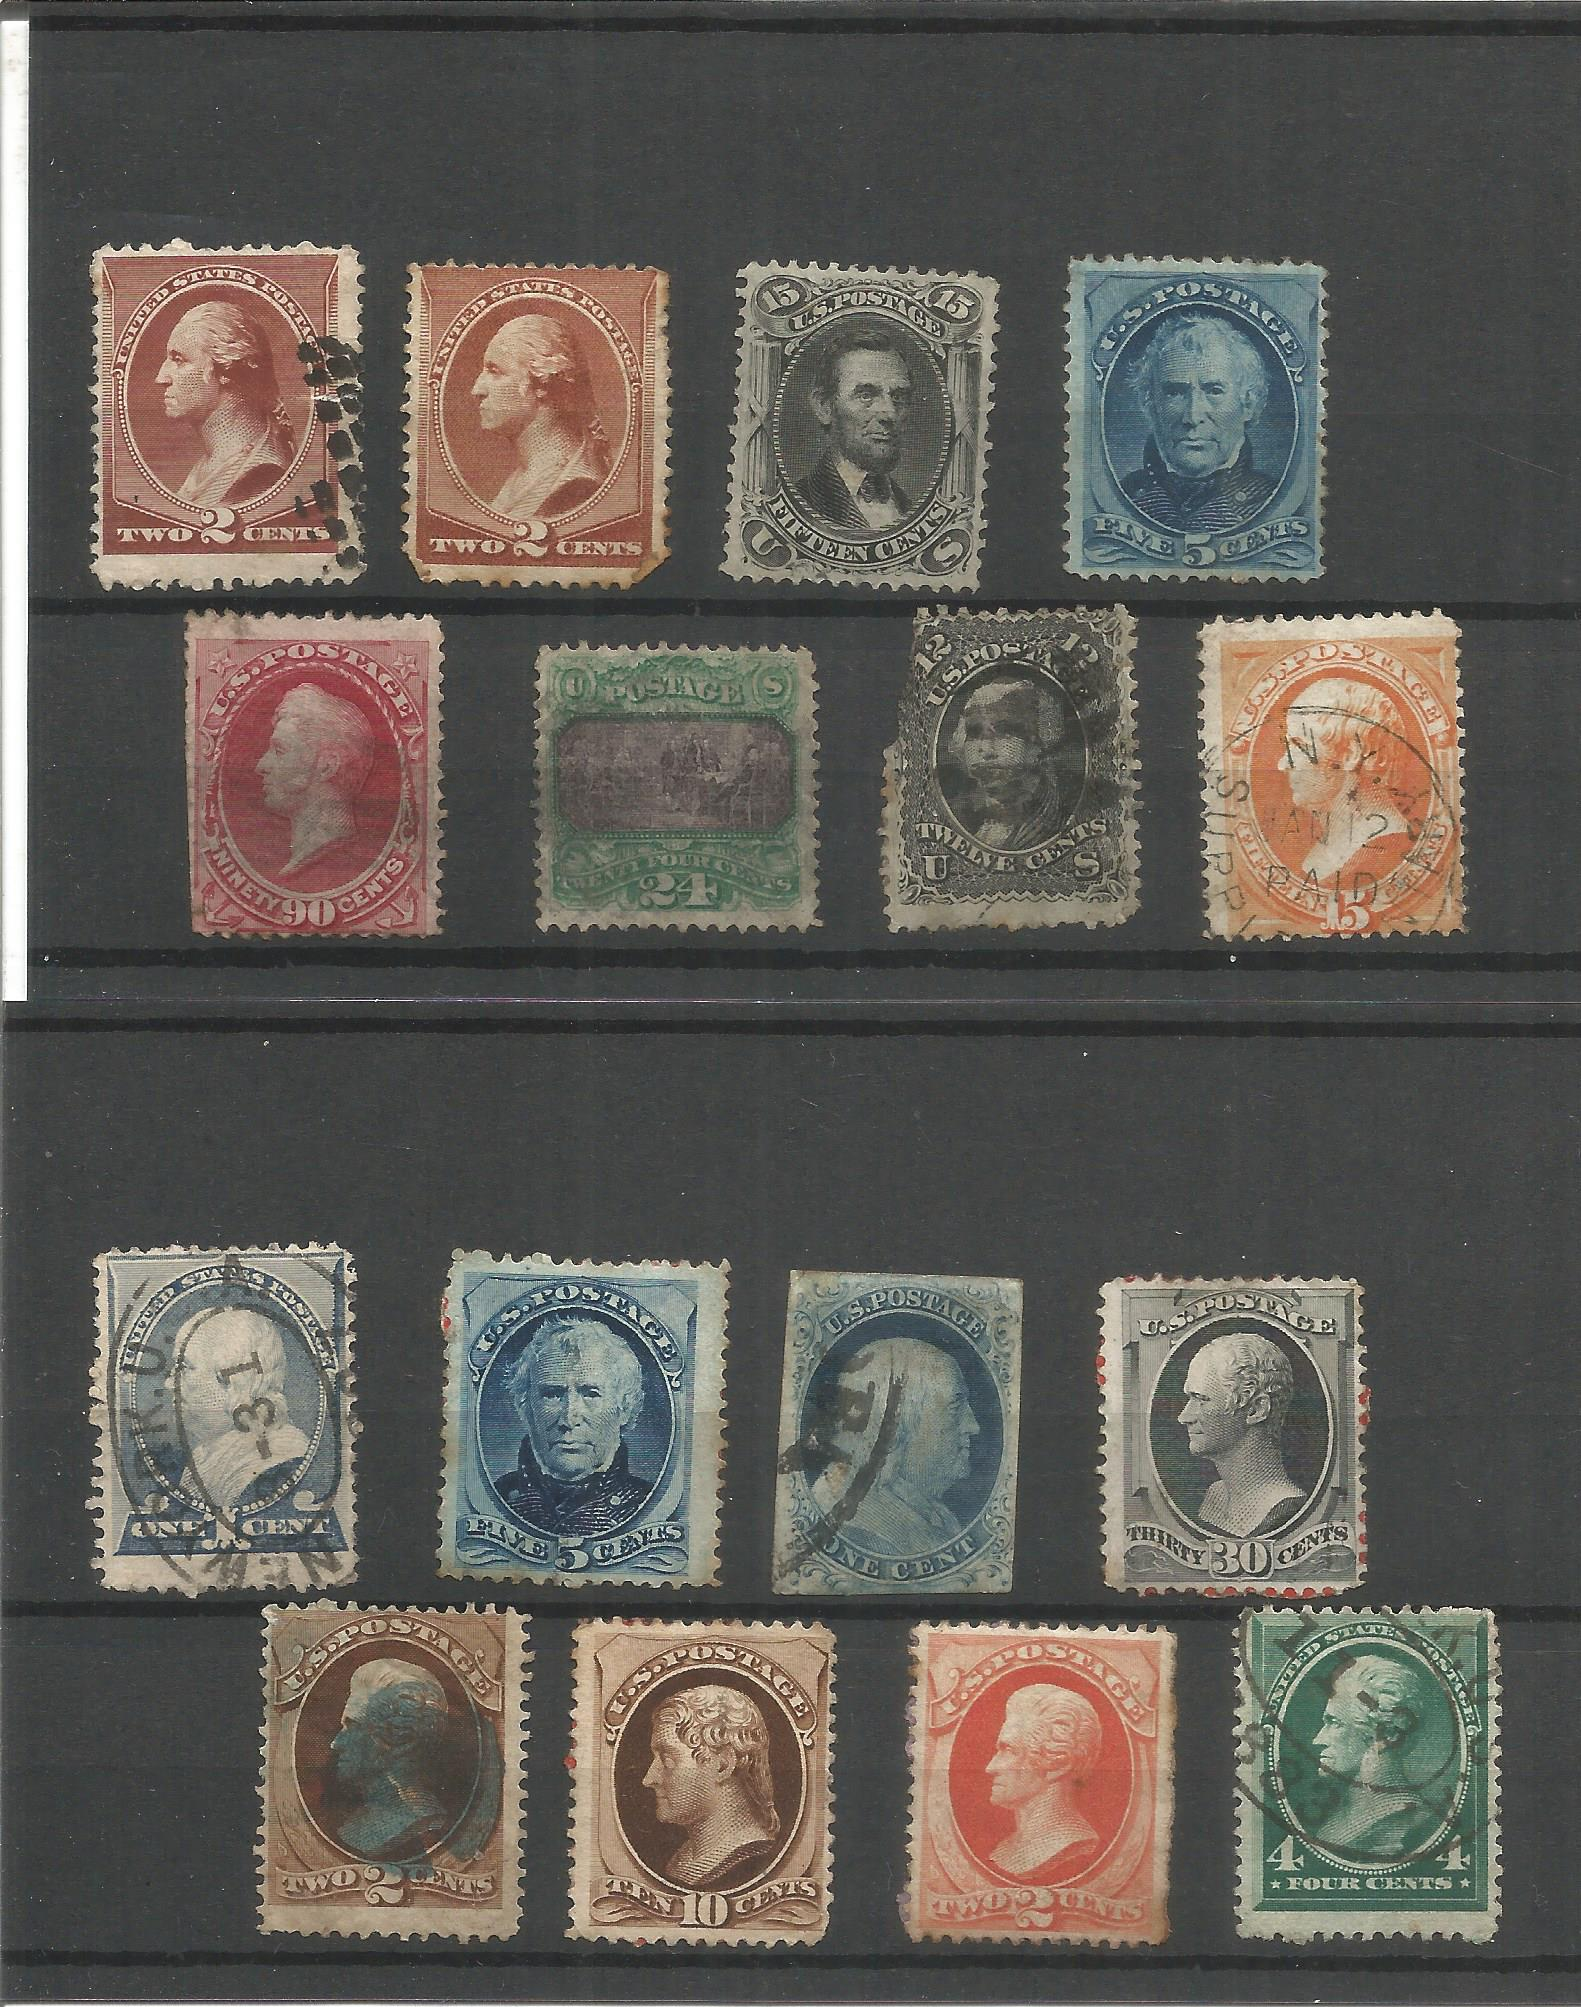 USA stamp collection on 3 stockcards. Good condition. We combine postage on multiple winning lots